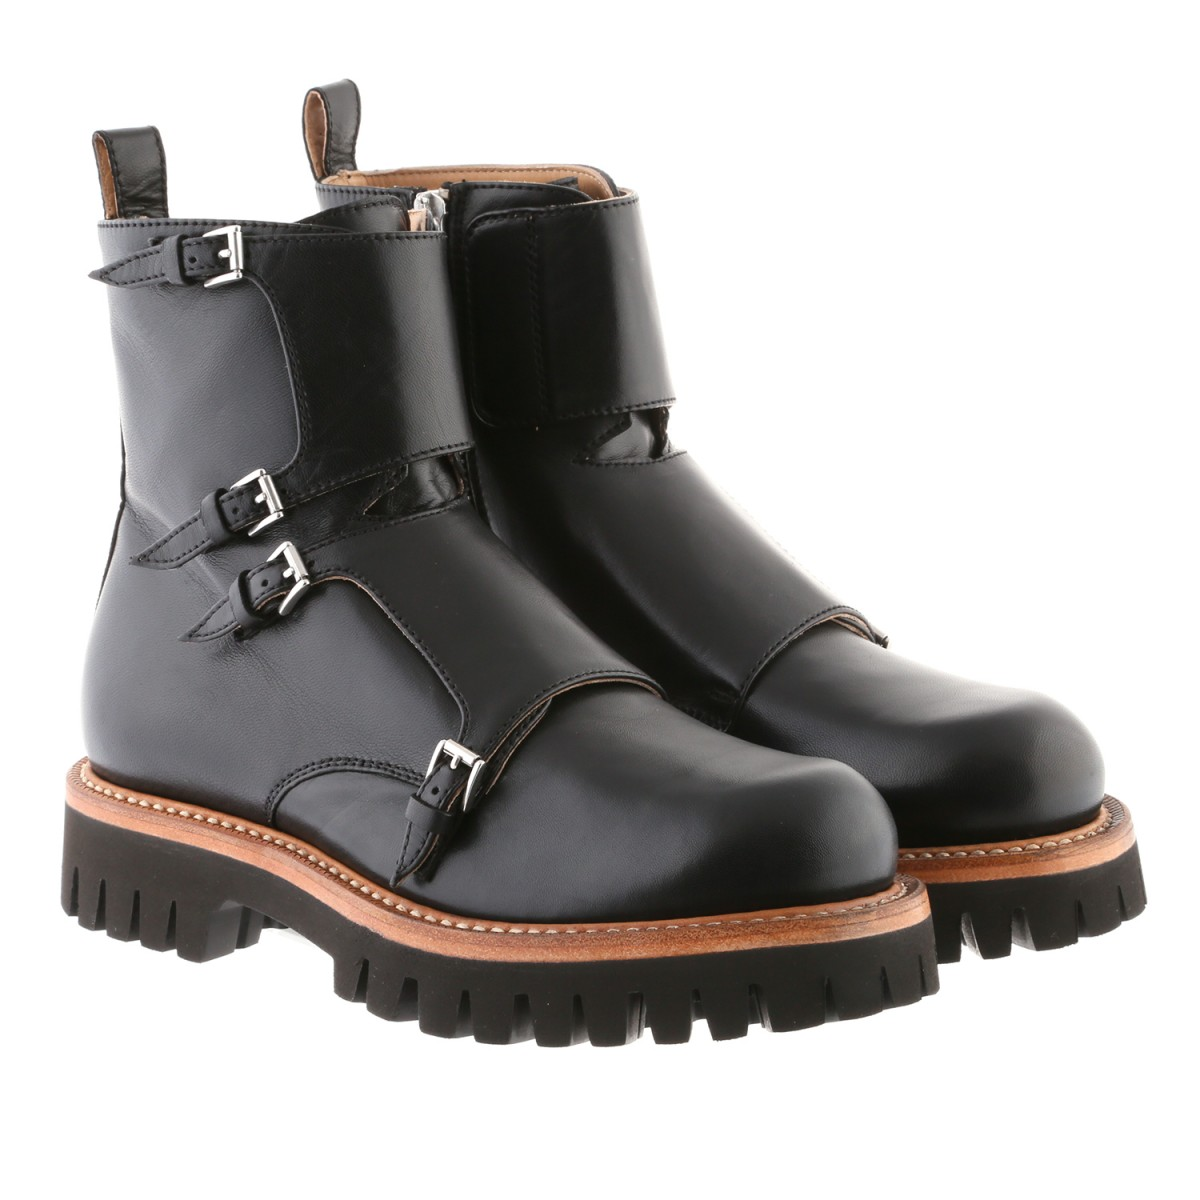 Cappelletti Buckle Boots